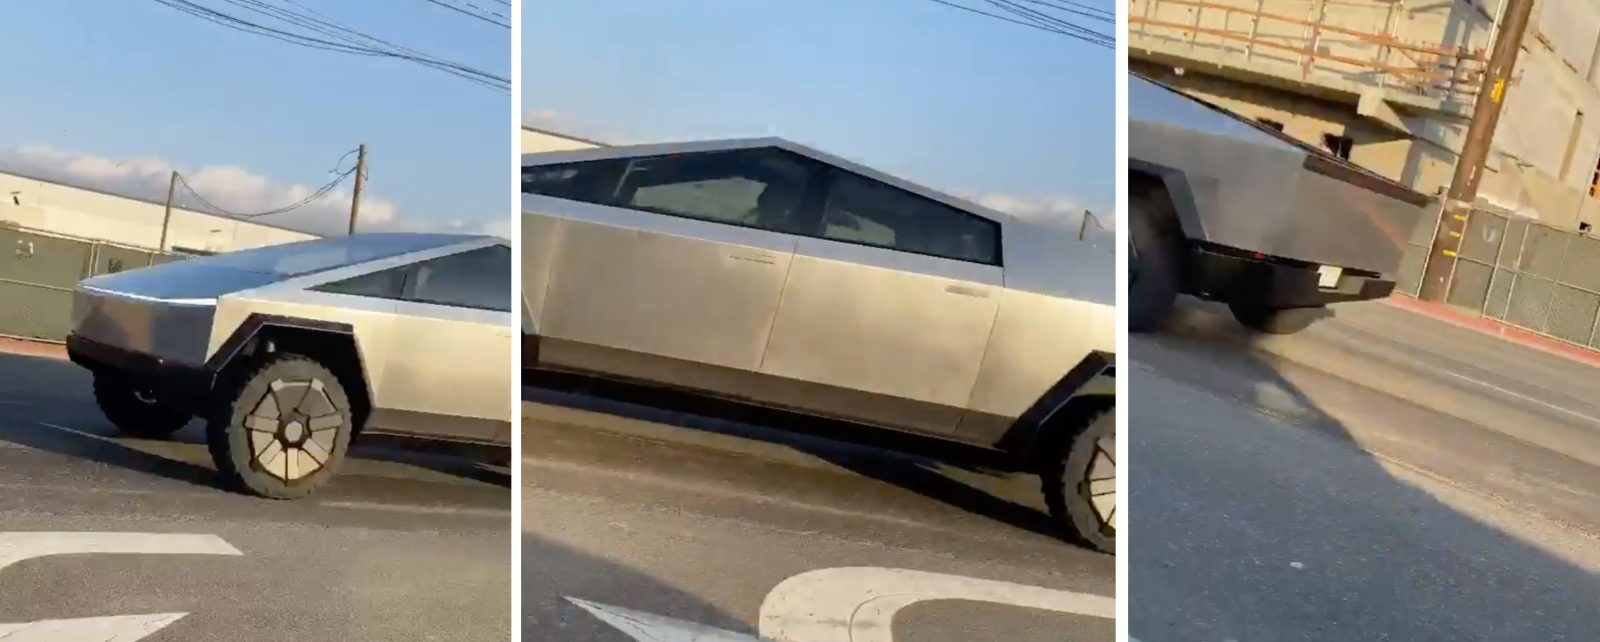 Tesla Cybertruck prototype spotted in broad daylight for first time